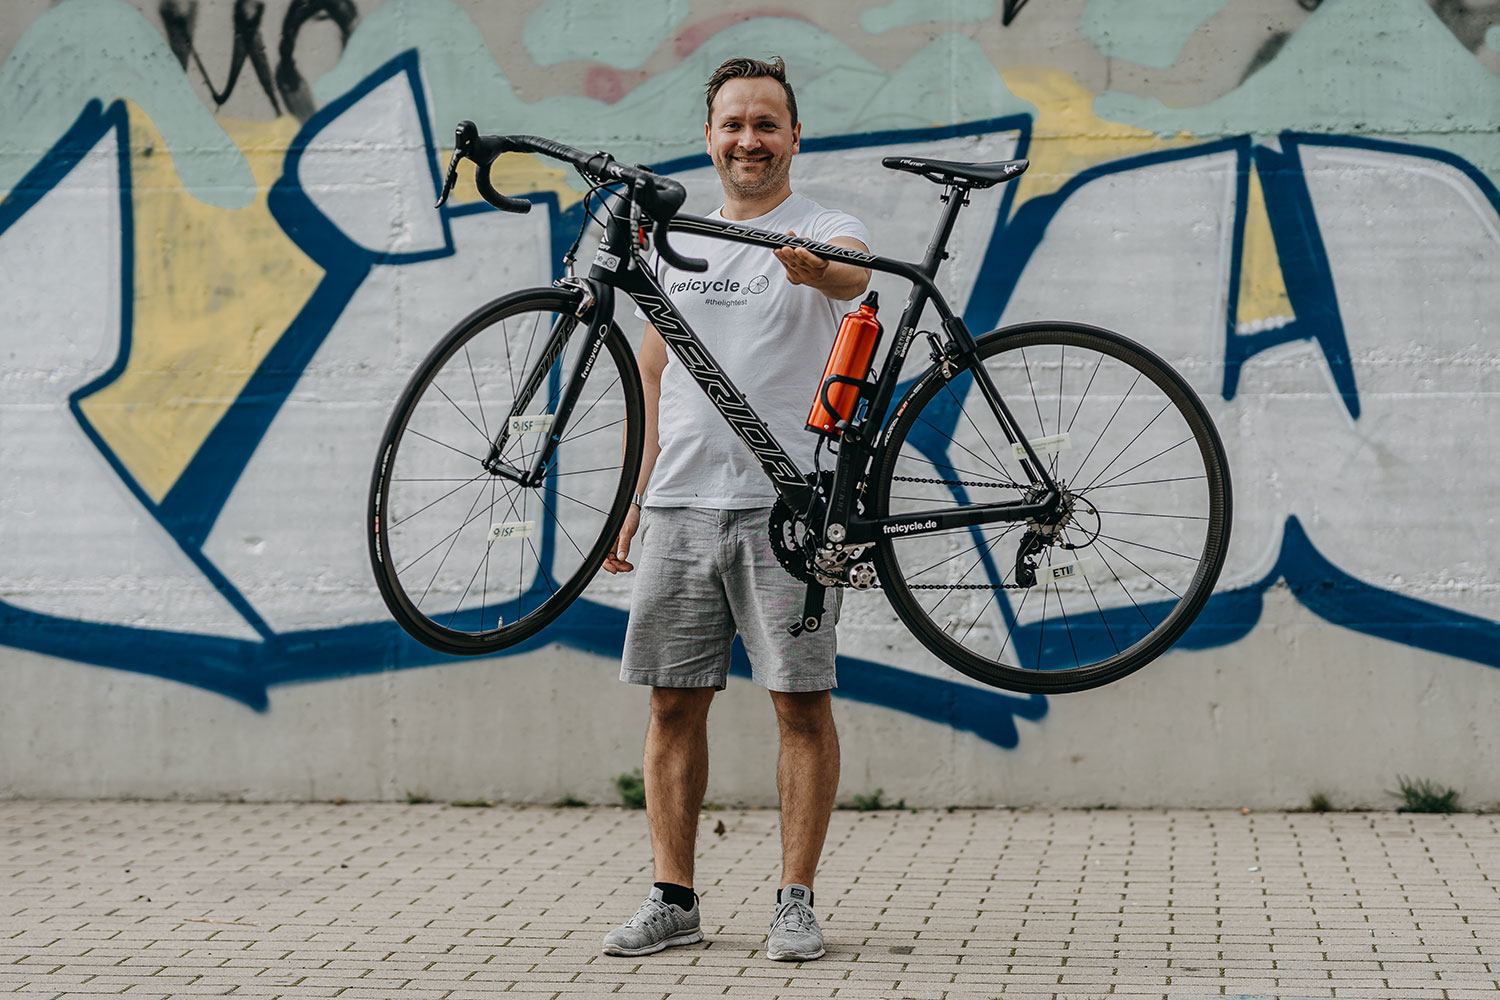 Meet Freicycle, the world's lightest e-bike that weighs just 6.8 kg